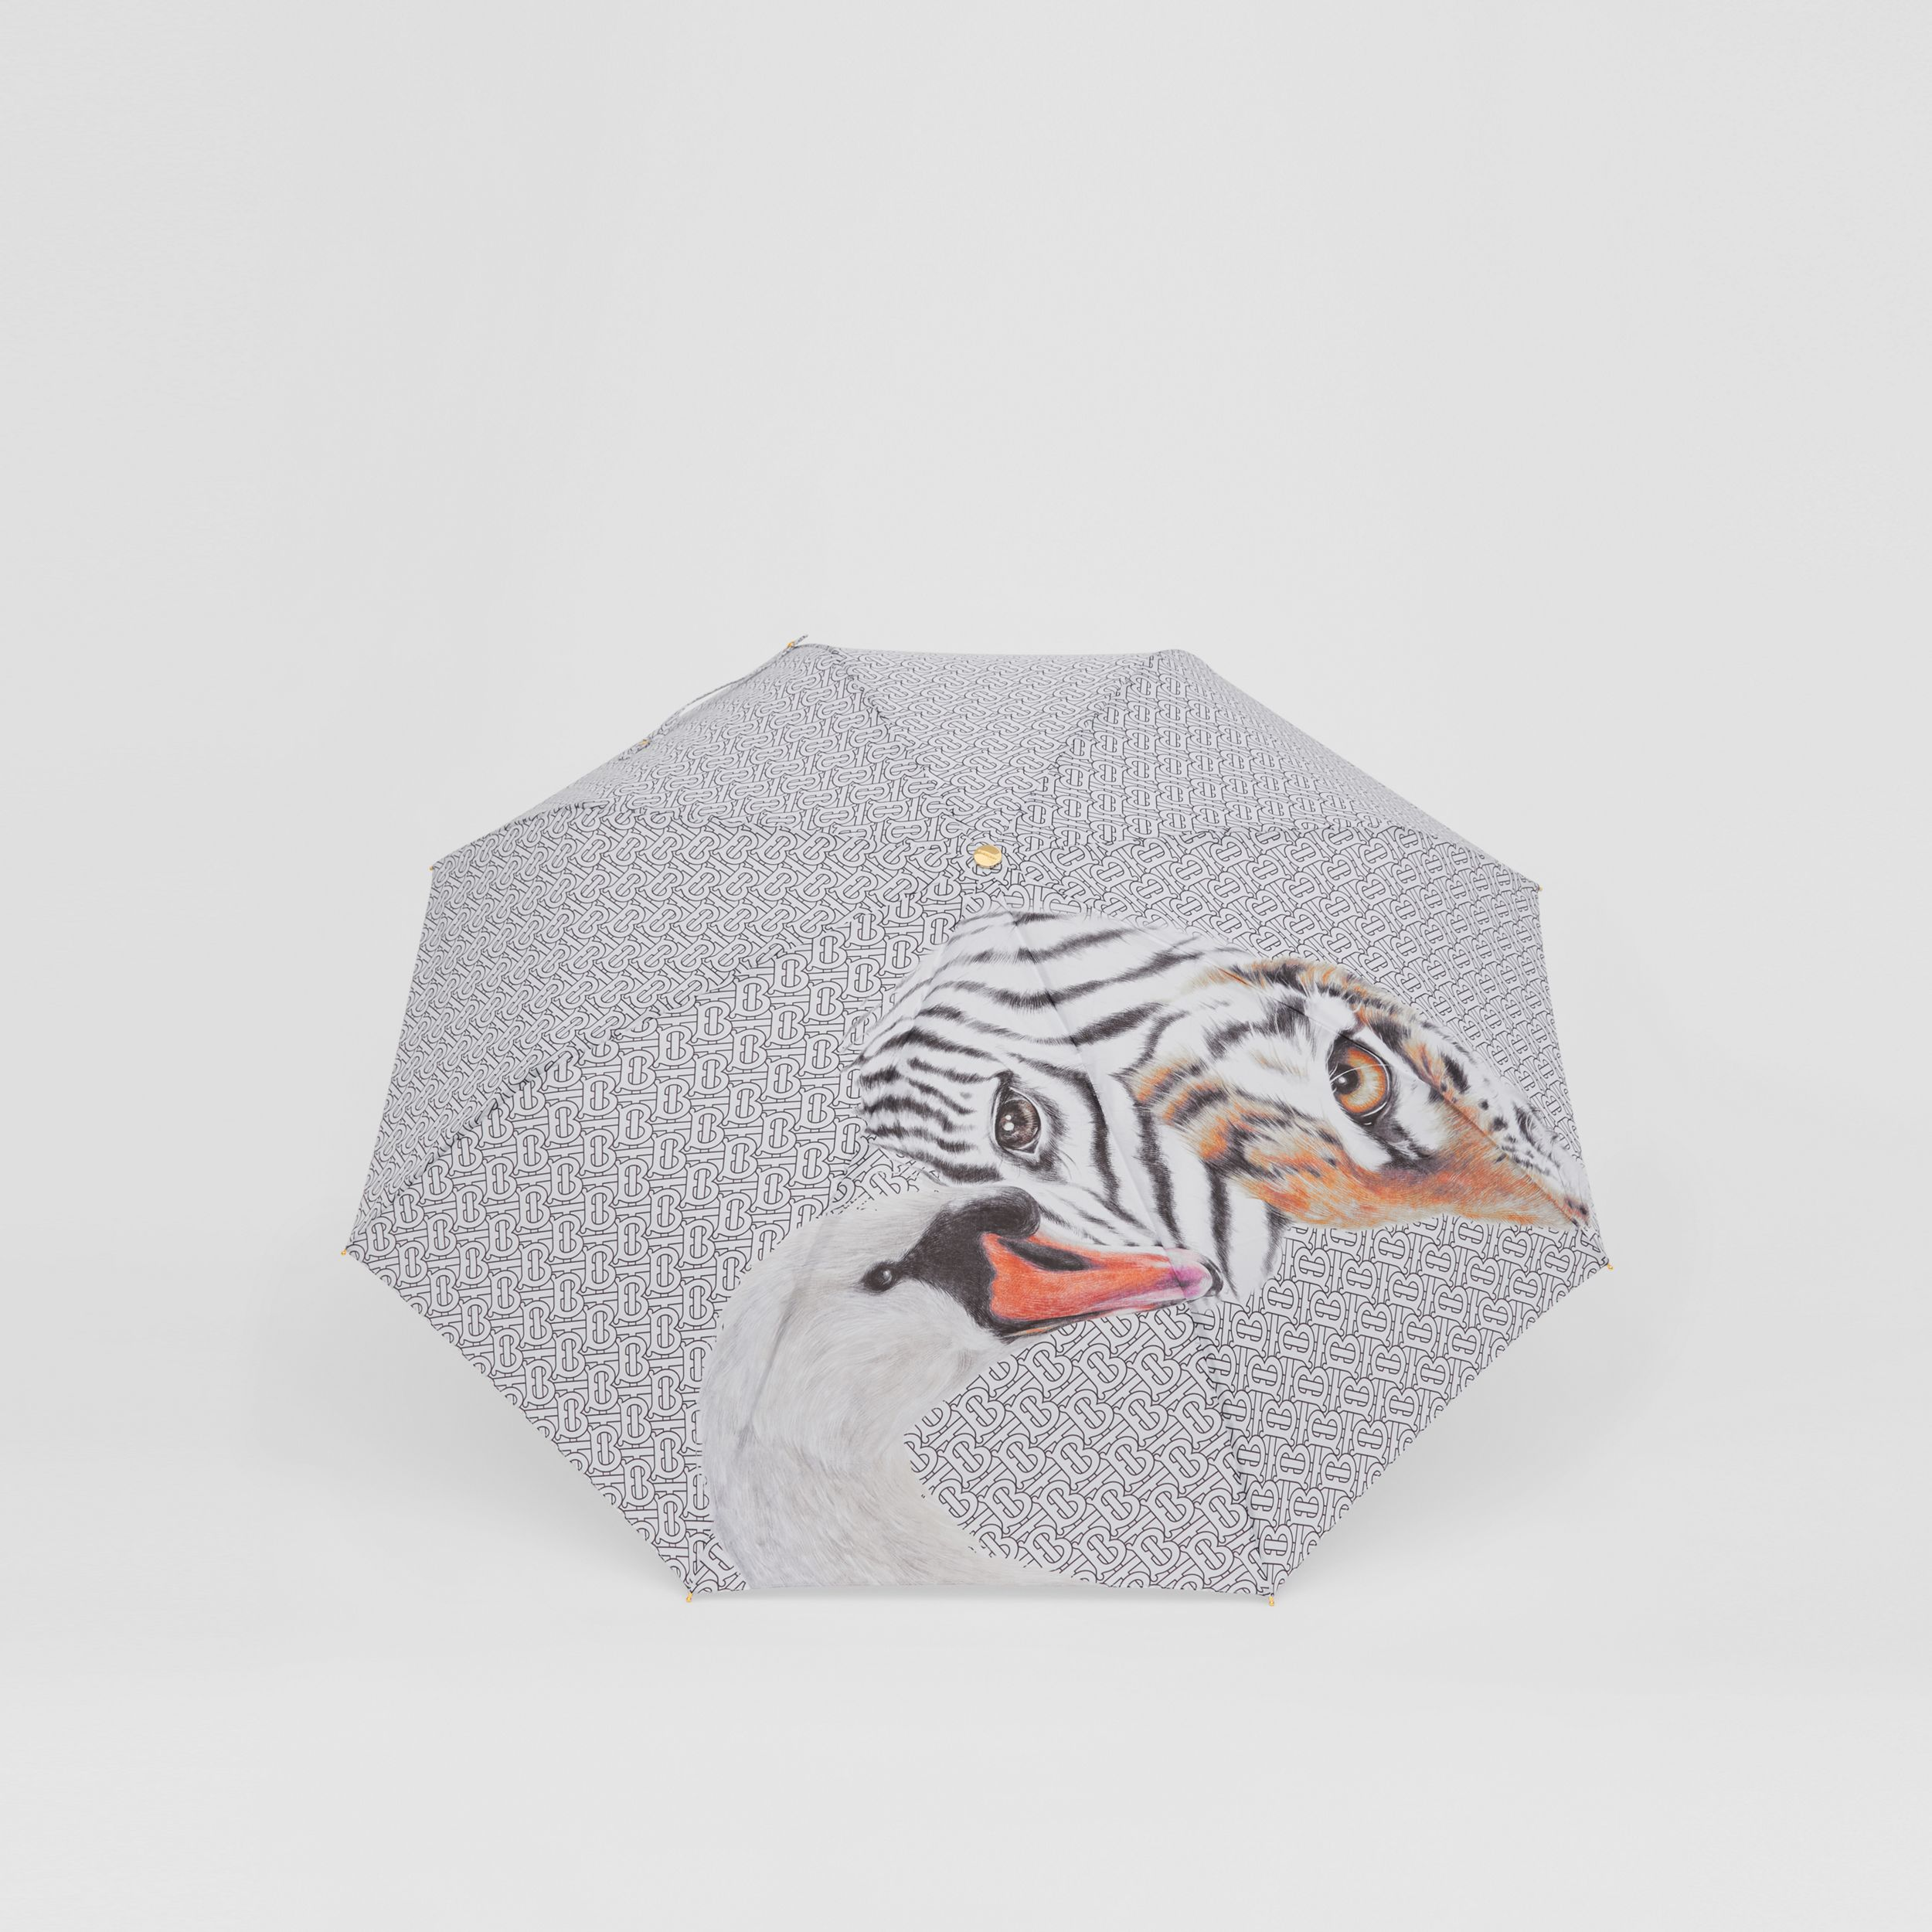 Animalia Print Folding Umbrella | Burberry - 4